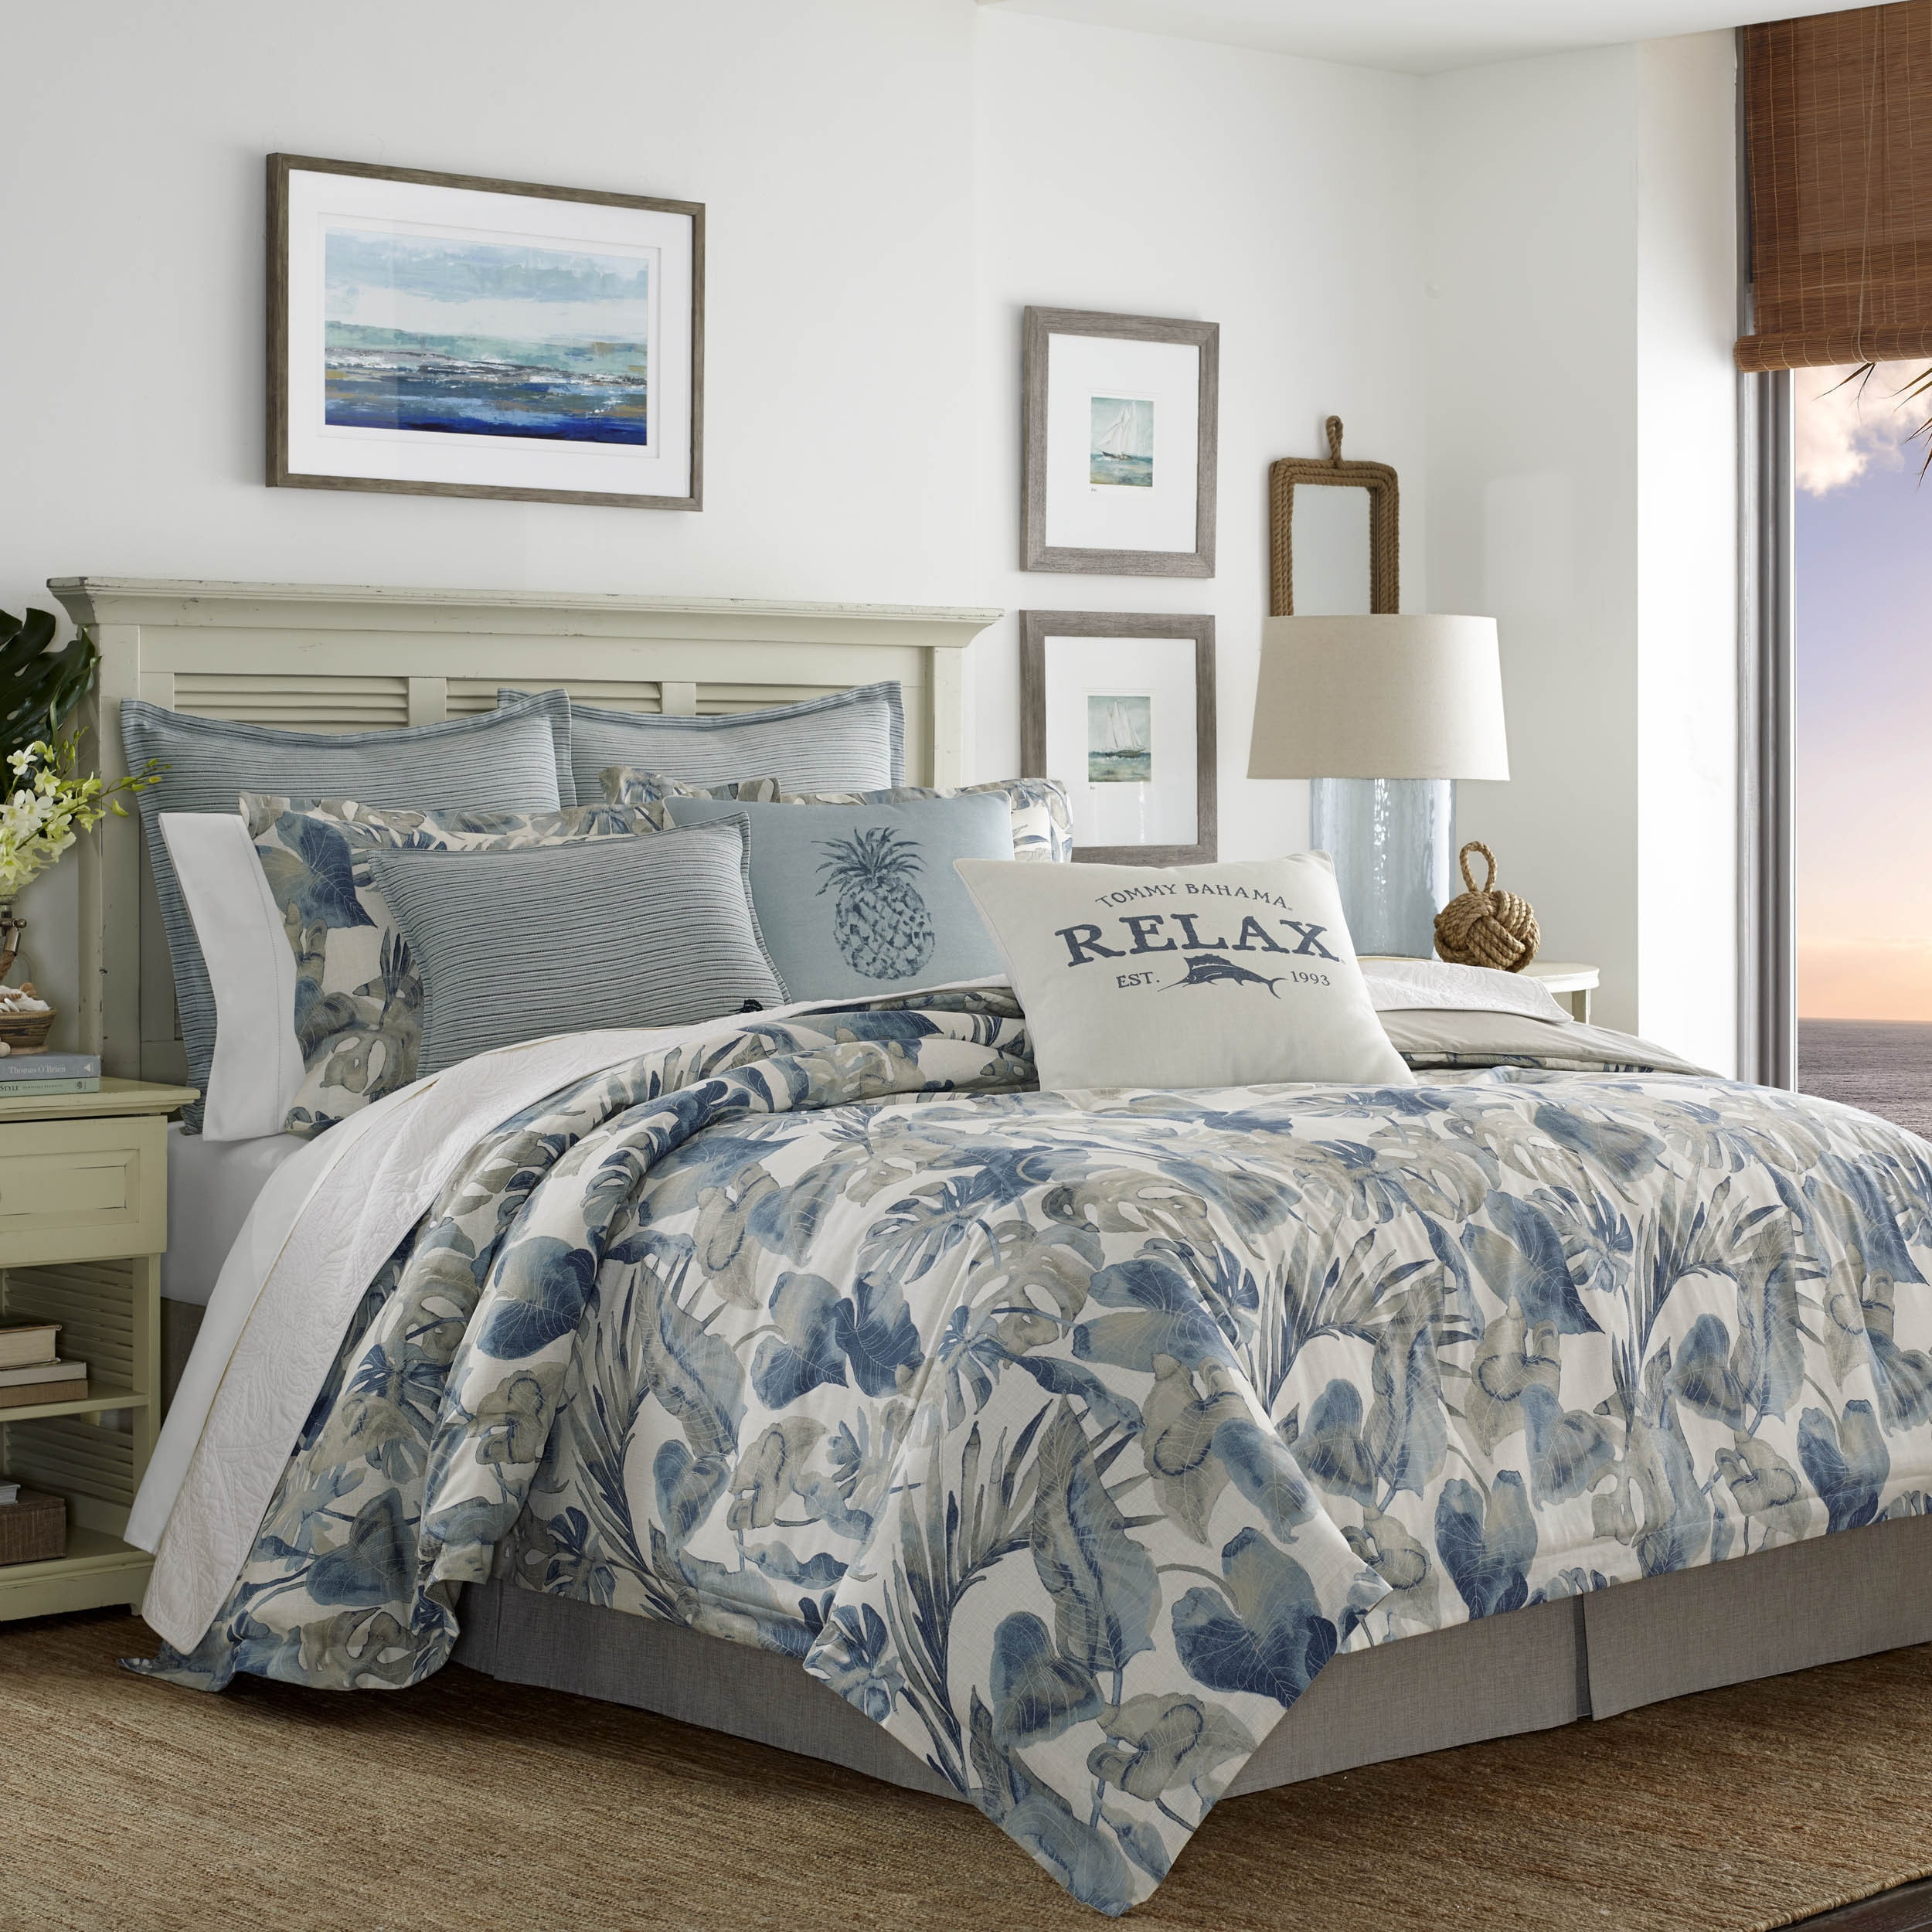 shipping free cotton bedding sale comforter cove on bonny overstock product bath quilt set tommy king bahama today